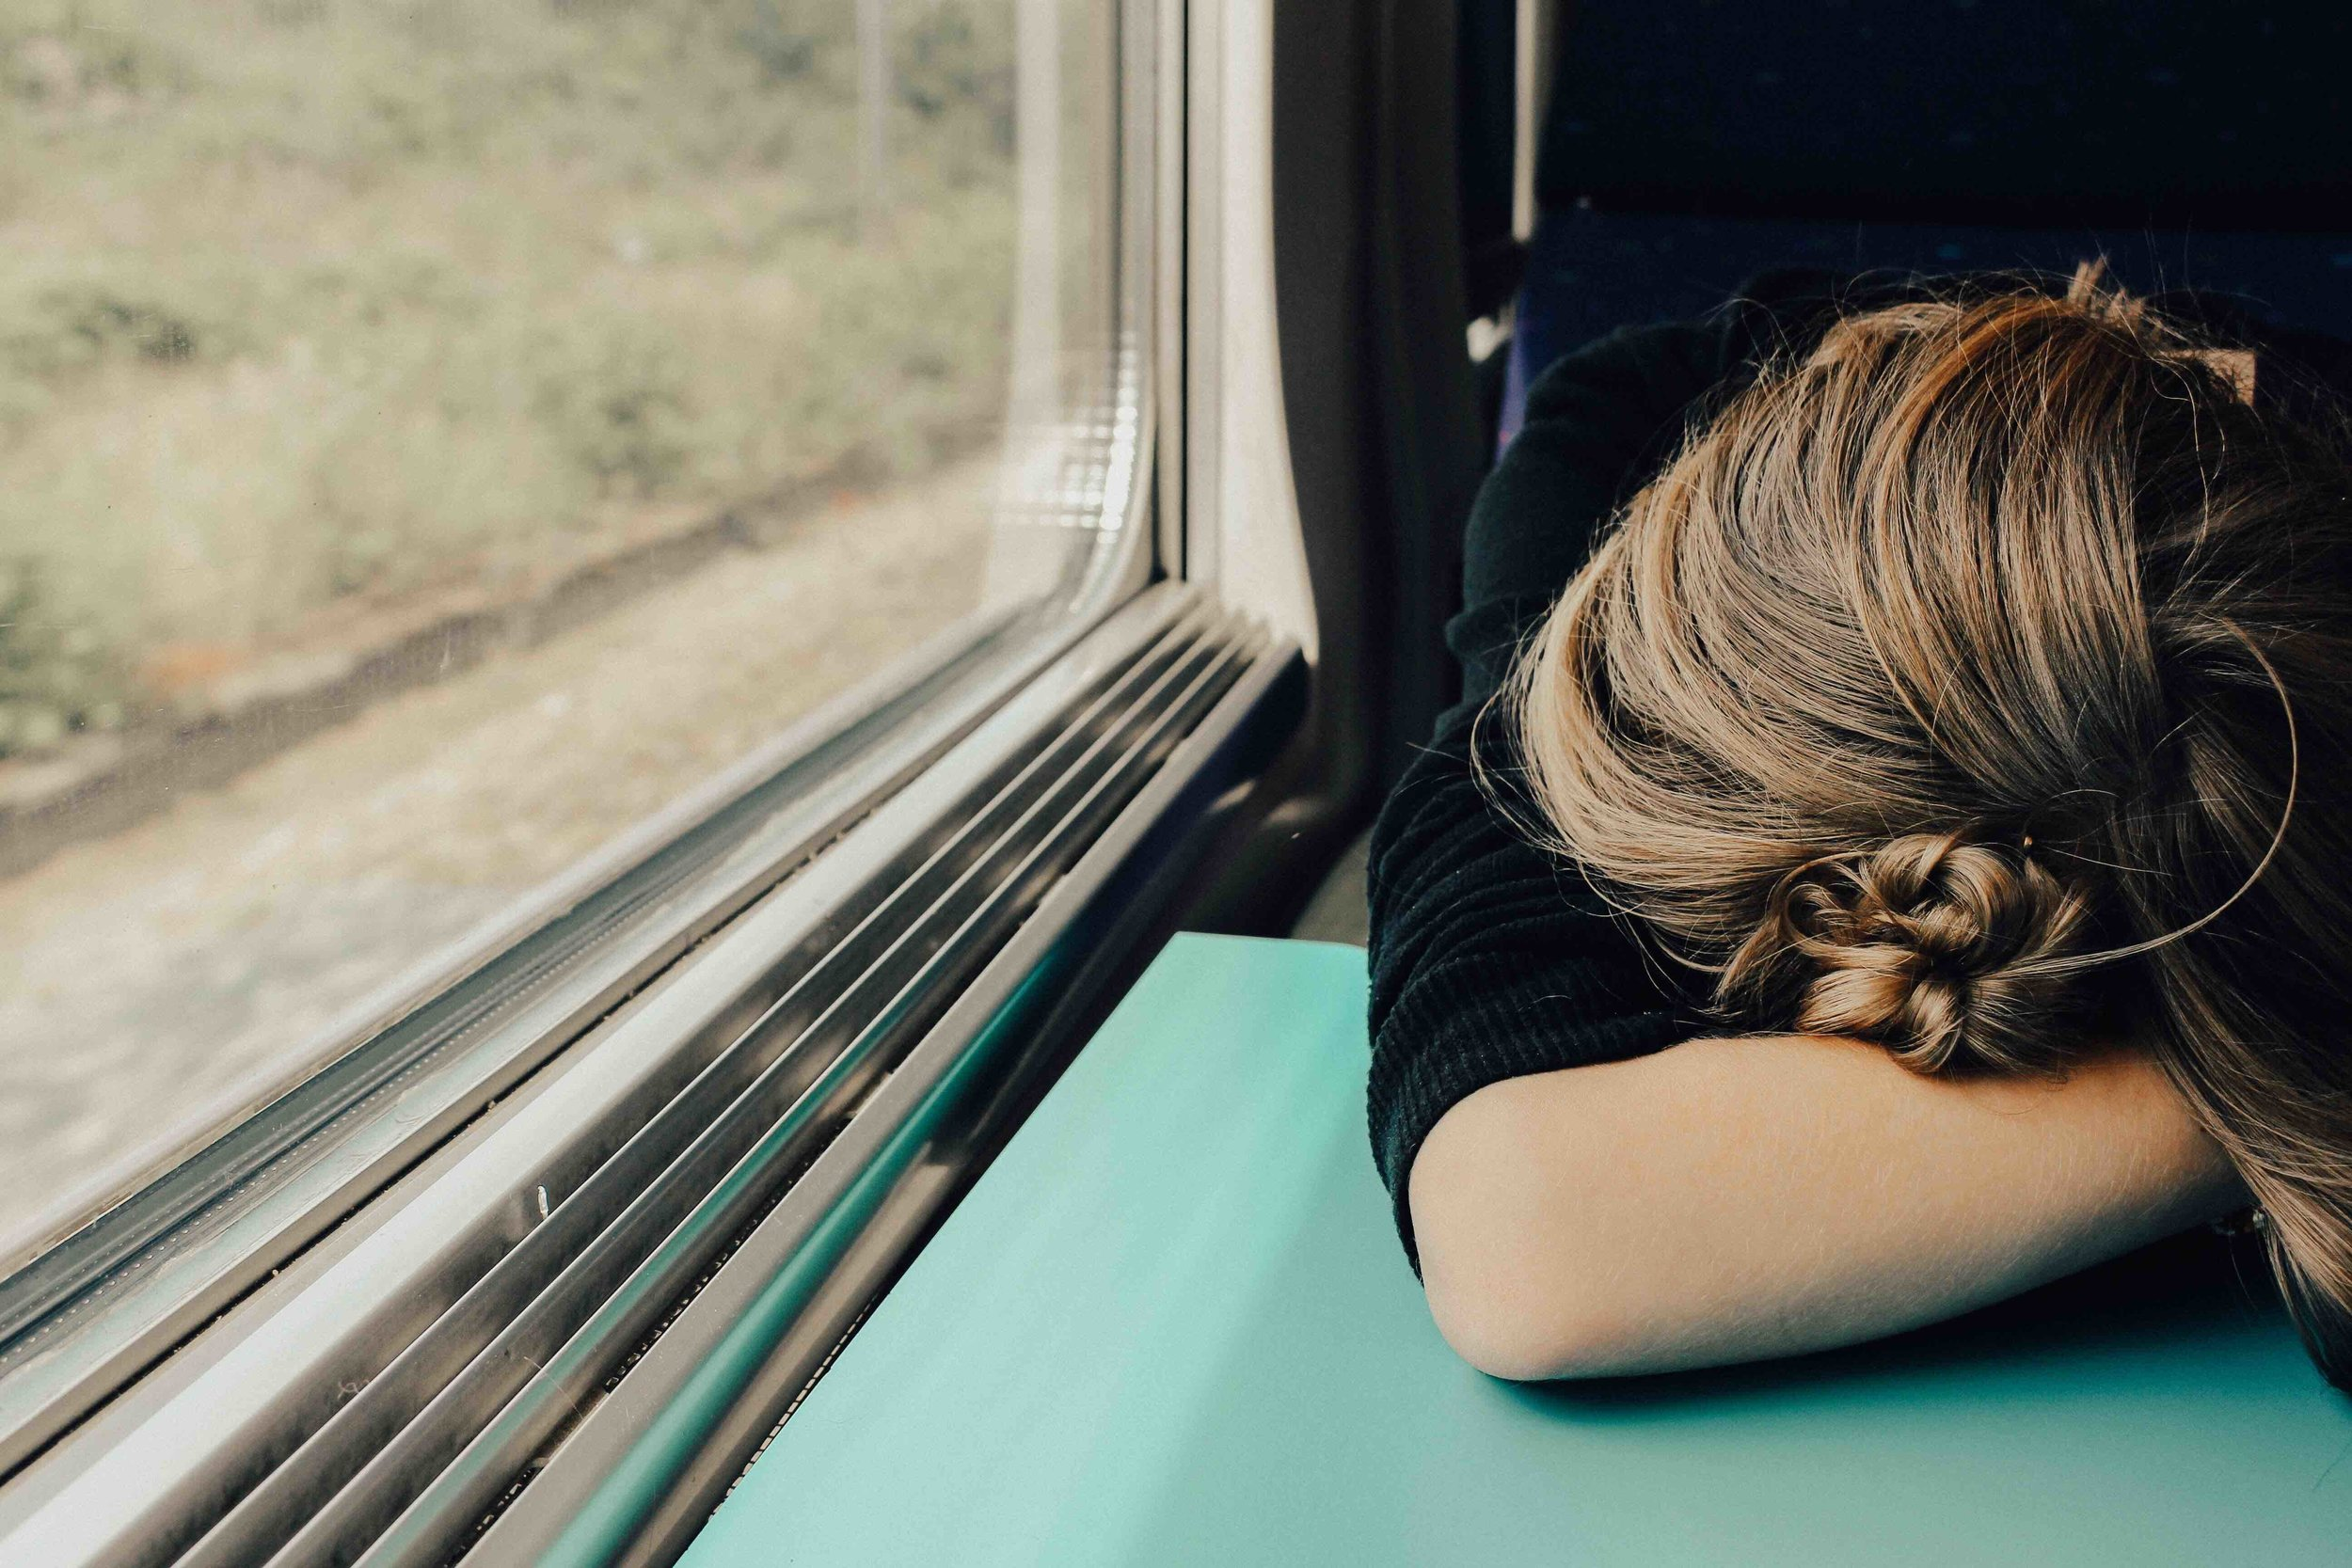 health issues from jetlag - Chronic jet lag can cause memory impairment, disrupted gene expression quickening aging, and increased risk of heart attack or stroke.